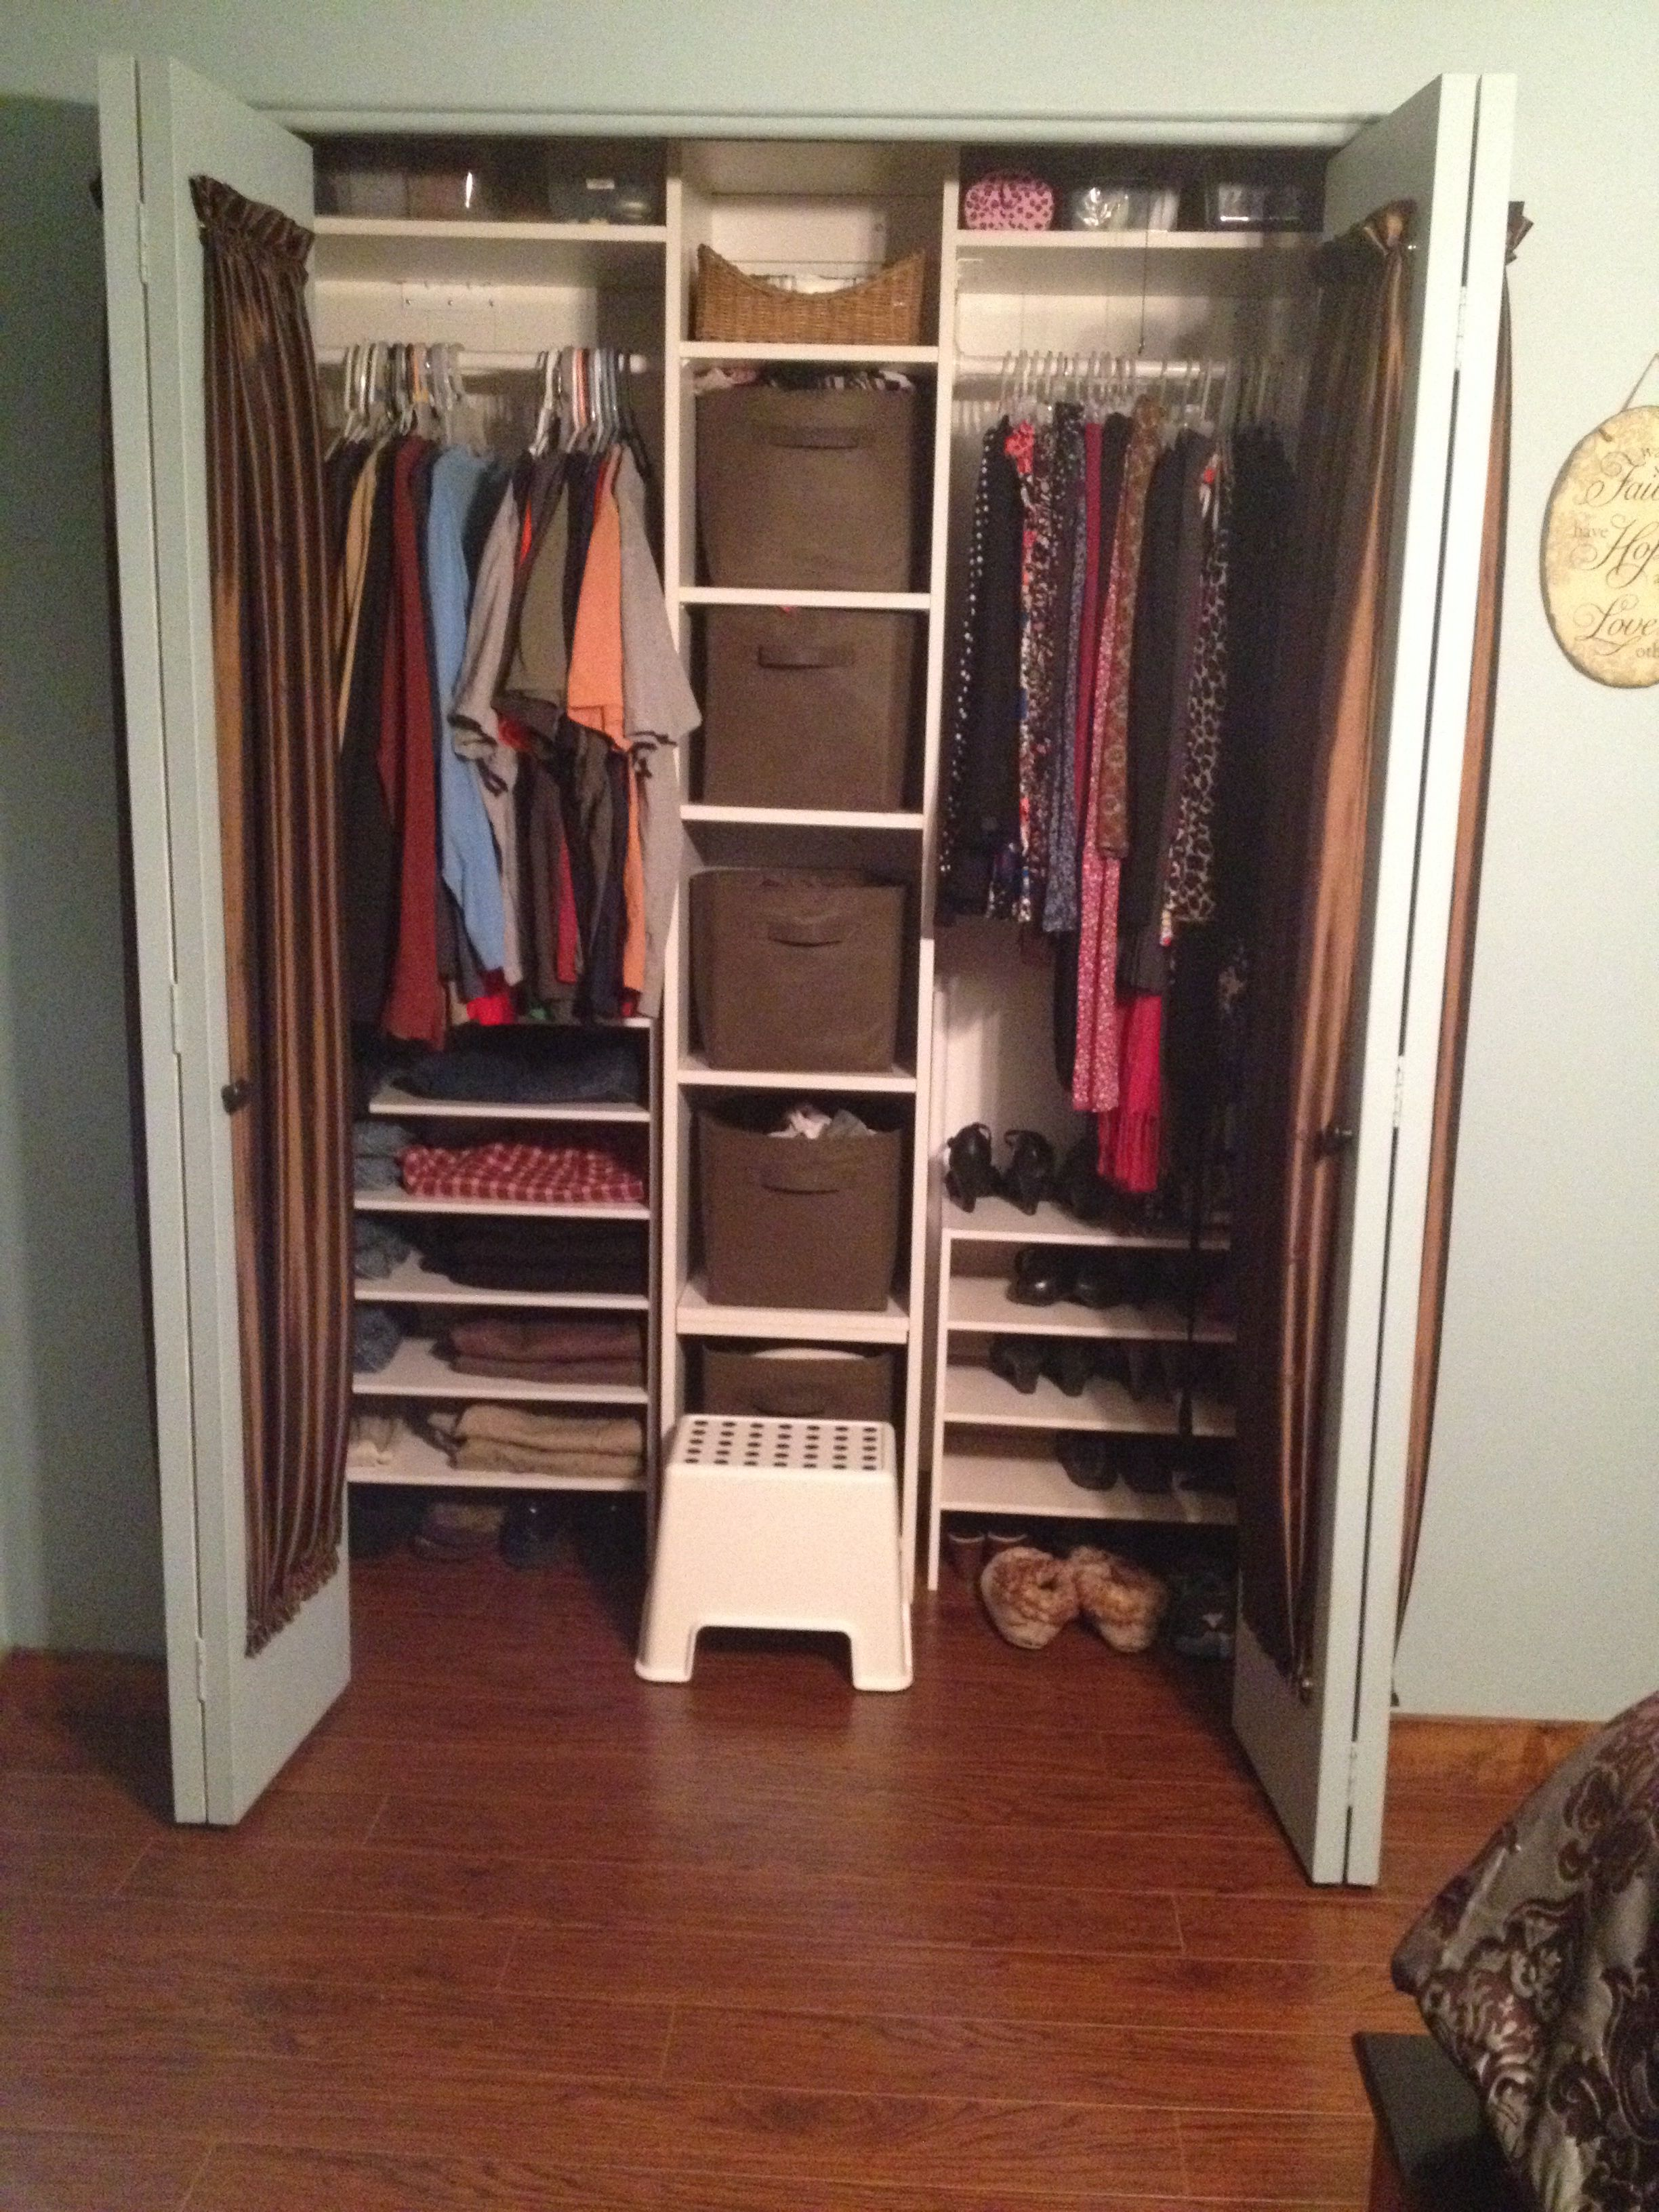 Pin By Laura P On Organize Shared Closet Closet Organization Small Closet Organization Bedroom